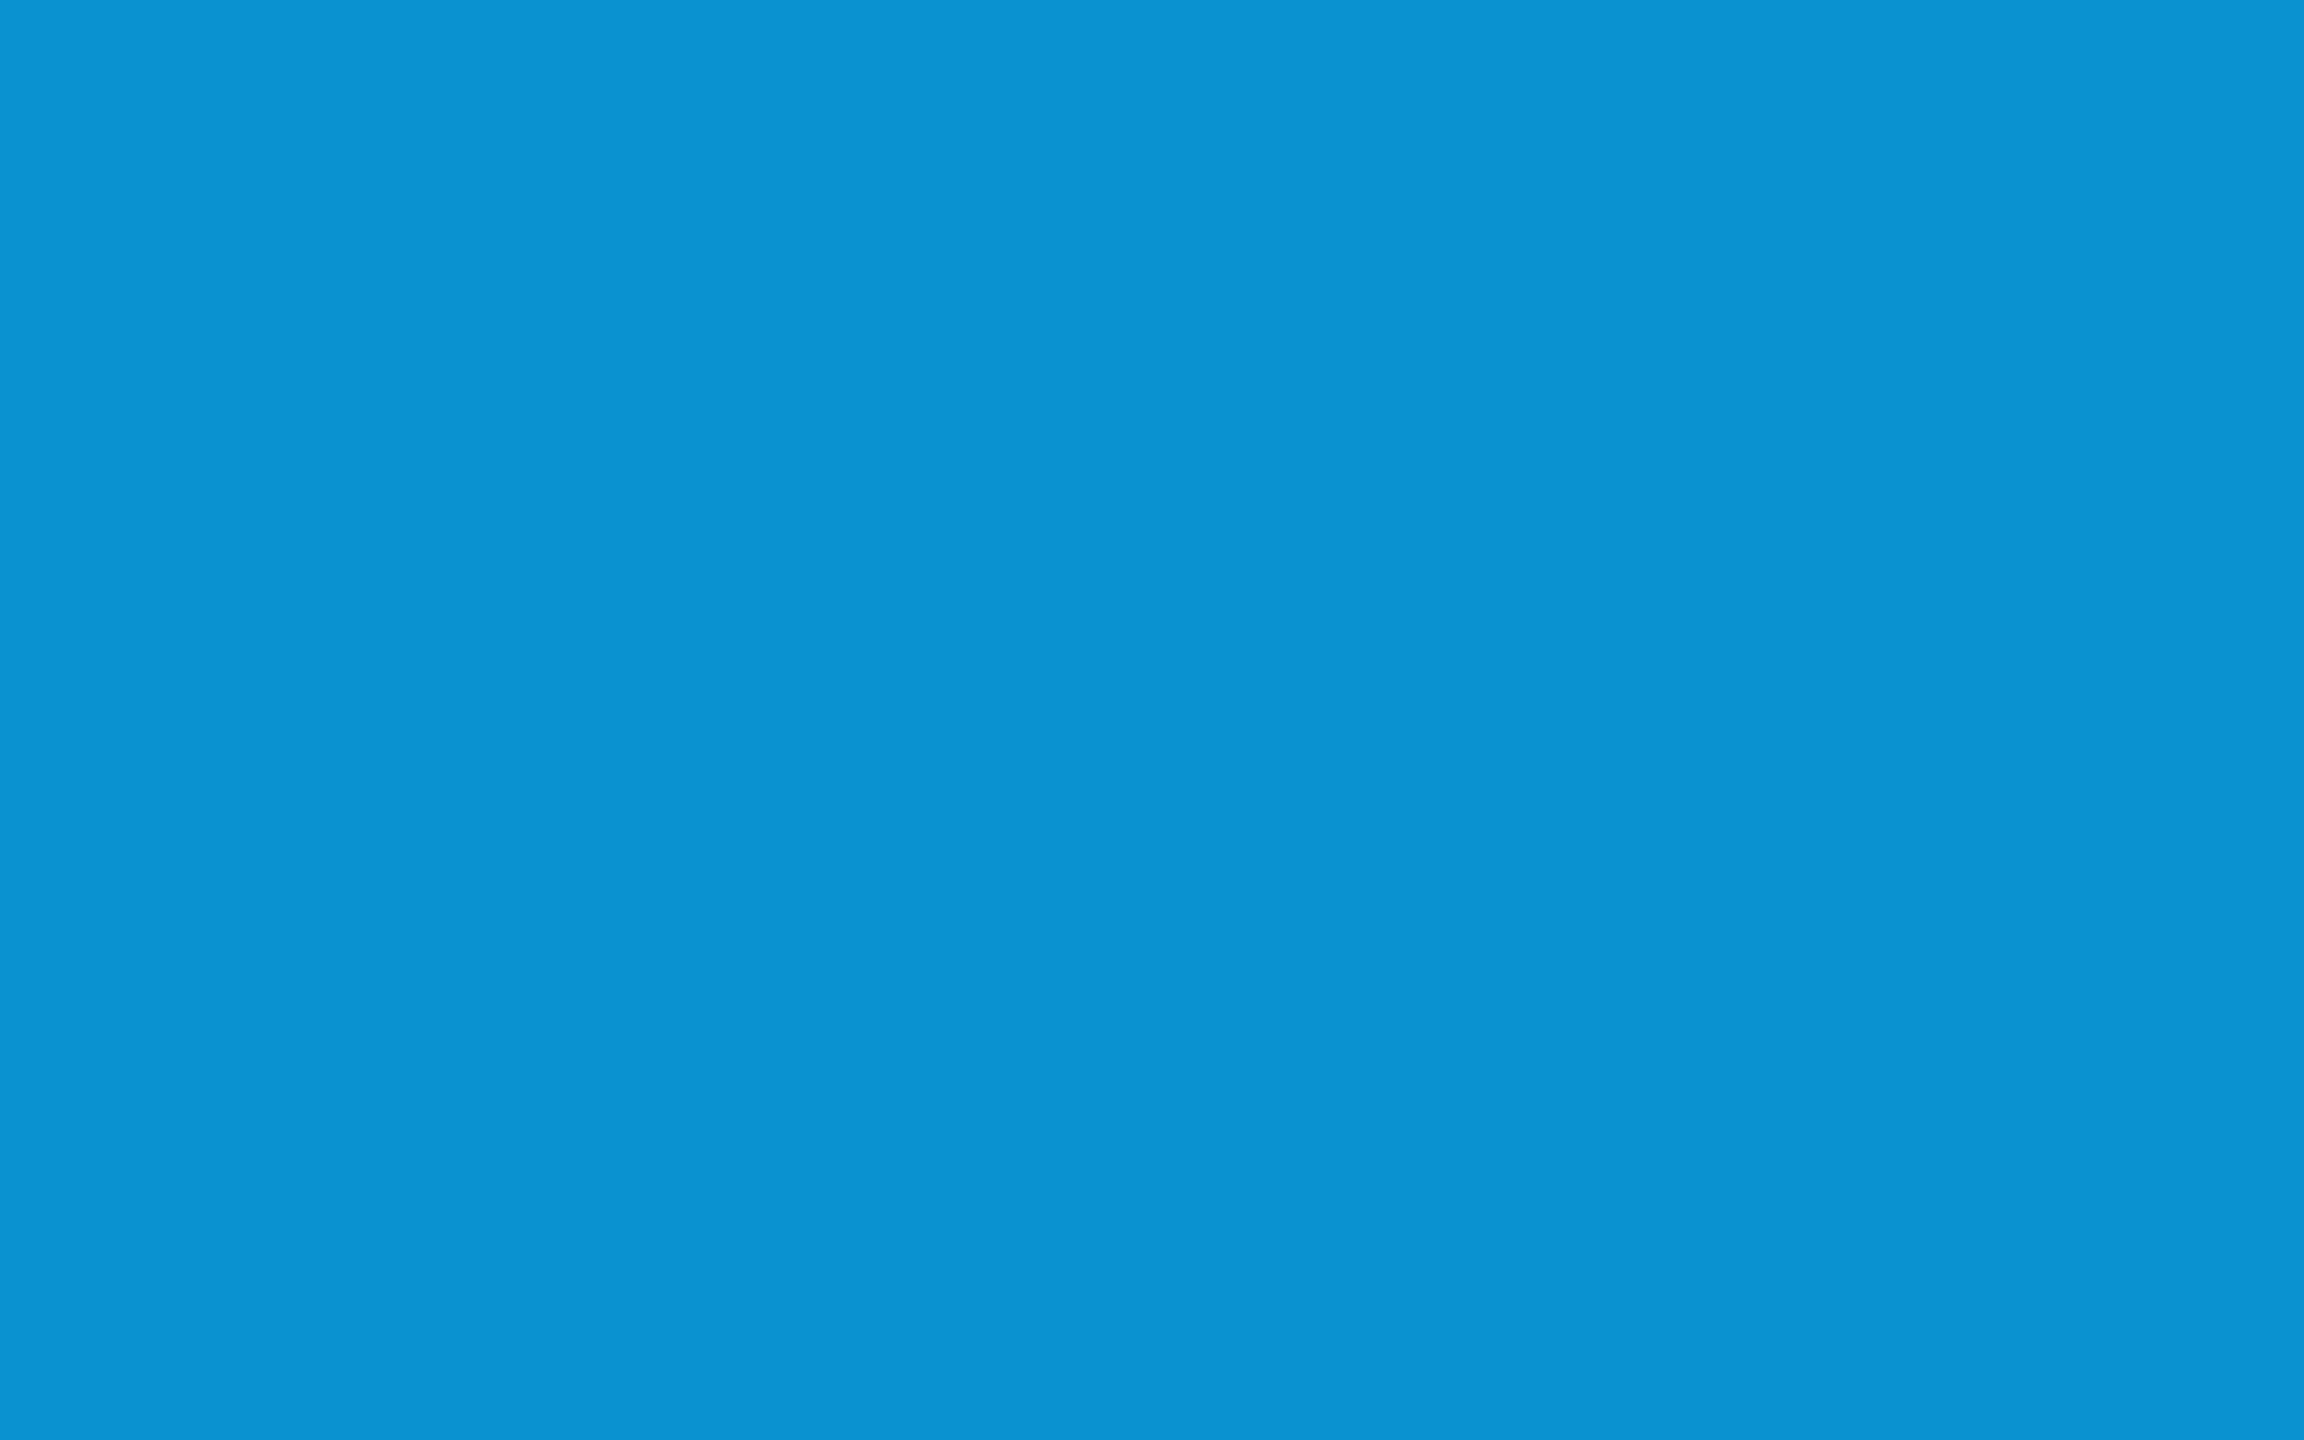 2304x1440 Rich Electric Blue Solid Color Background